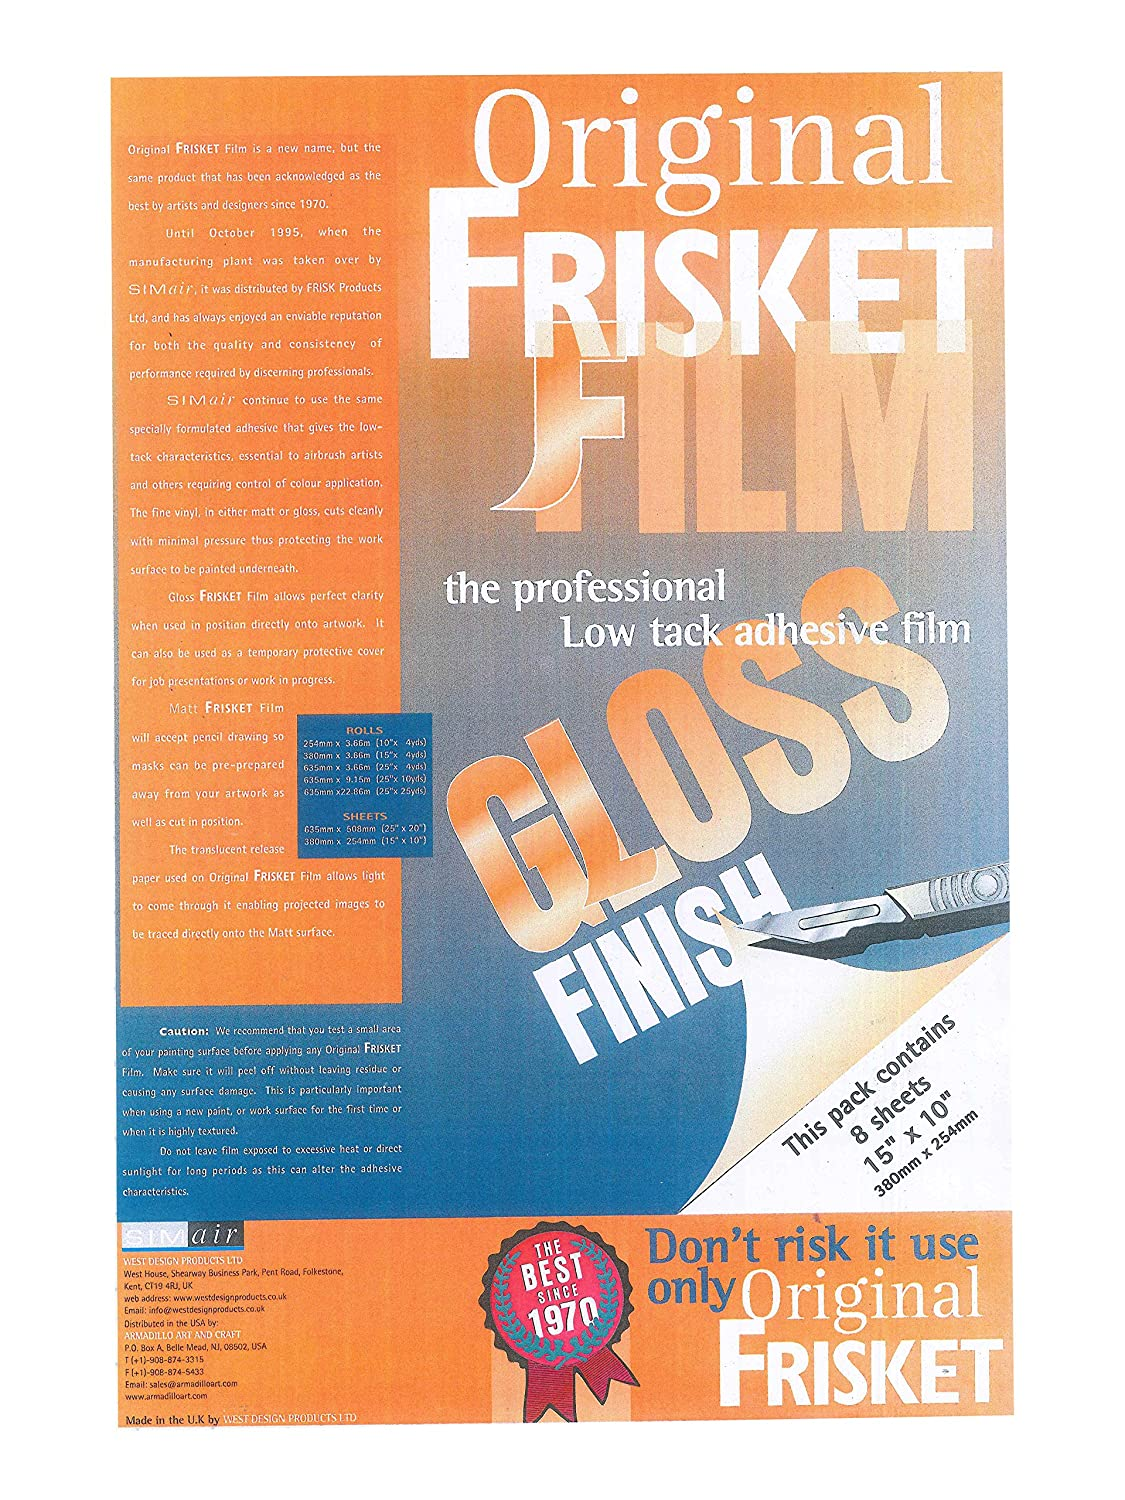 Original Frisket 15-Inch by 10-Inch Gloss Masking Sheets, 8-Pack Armadillo Art & Craft 52708